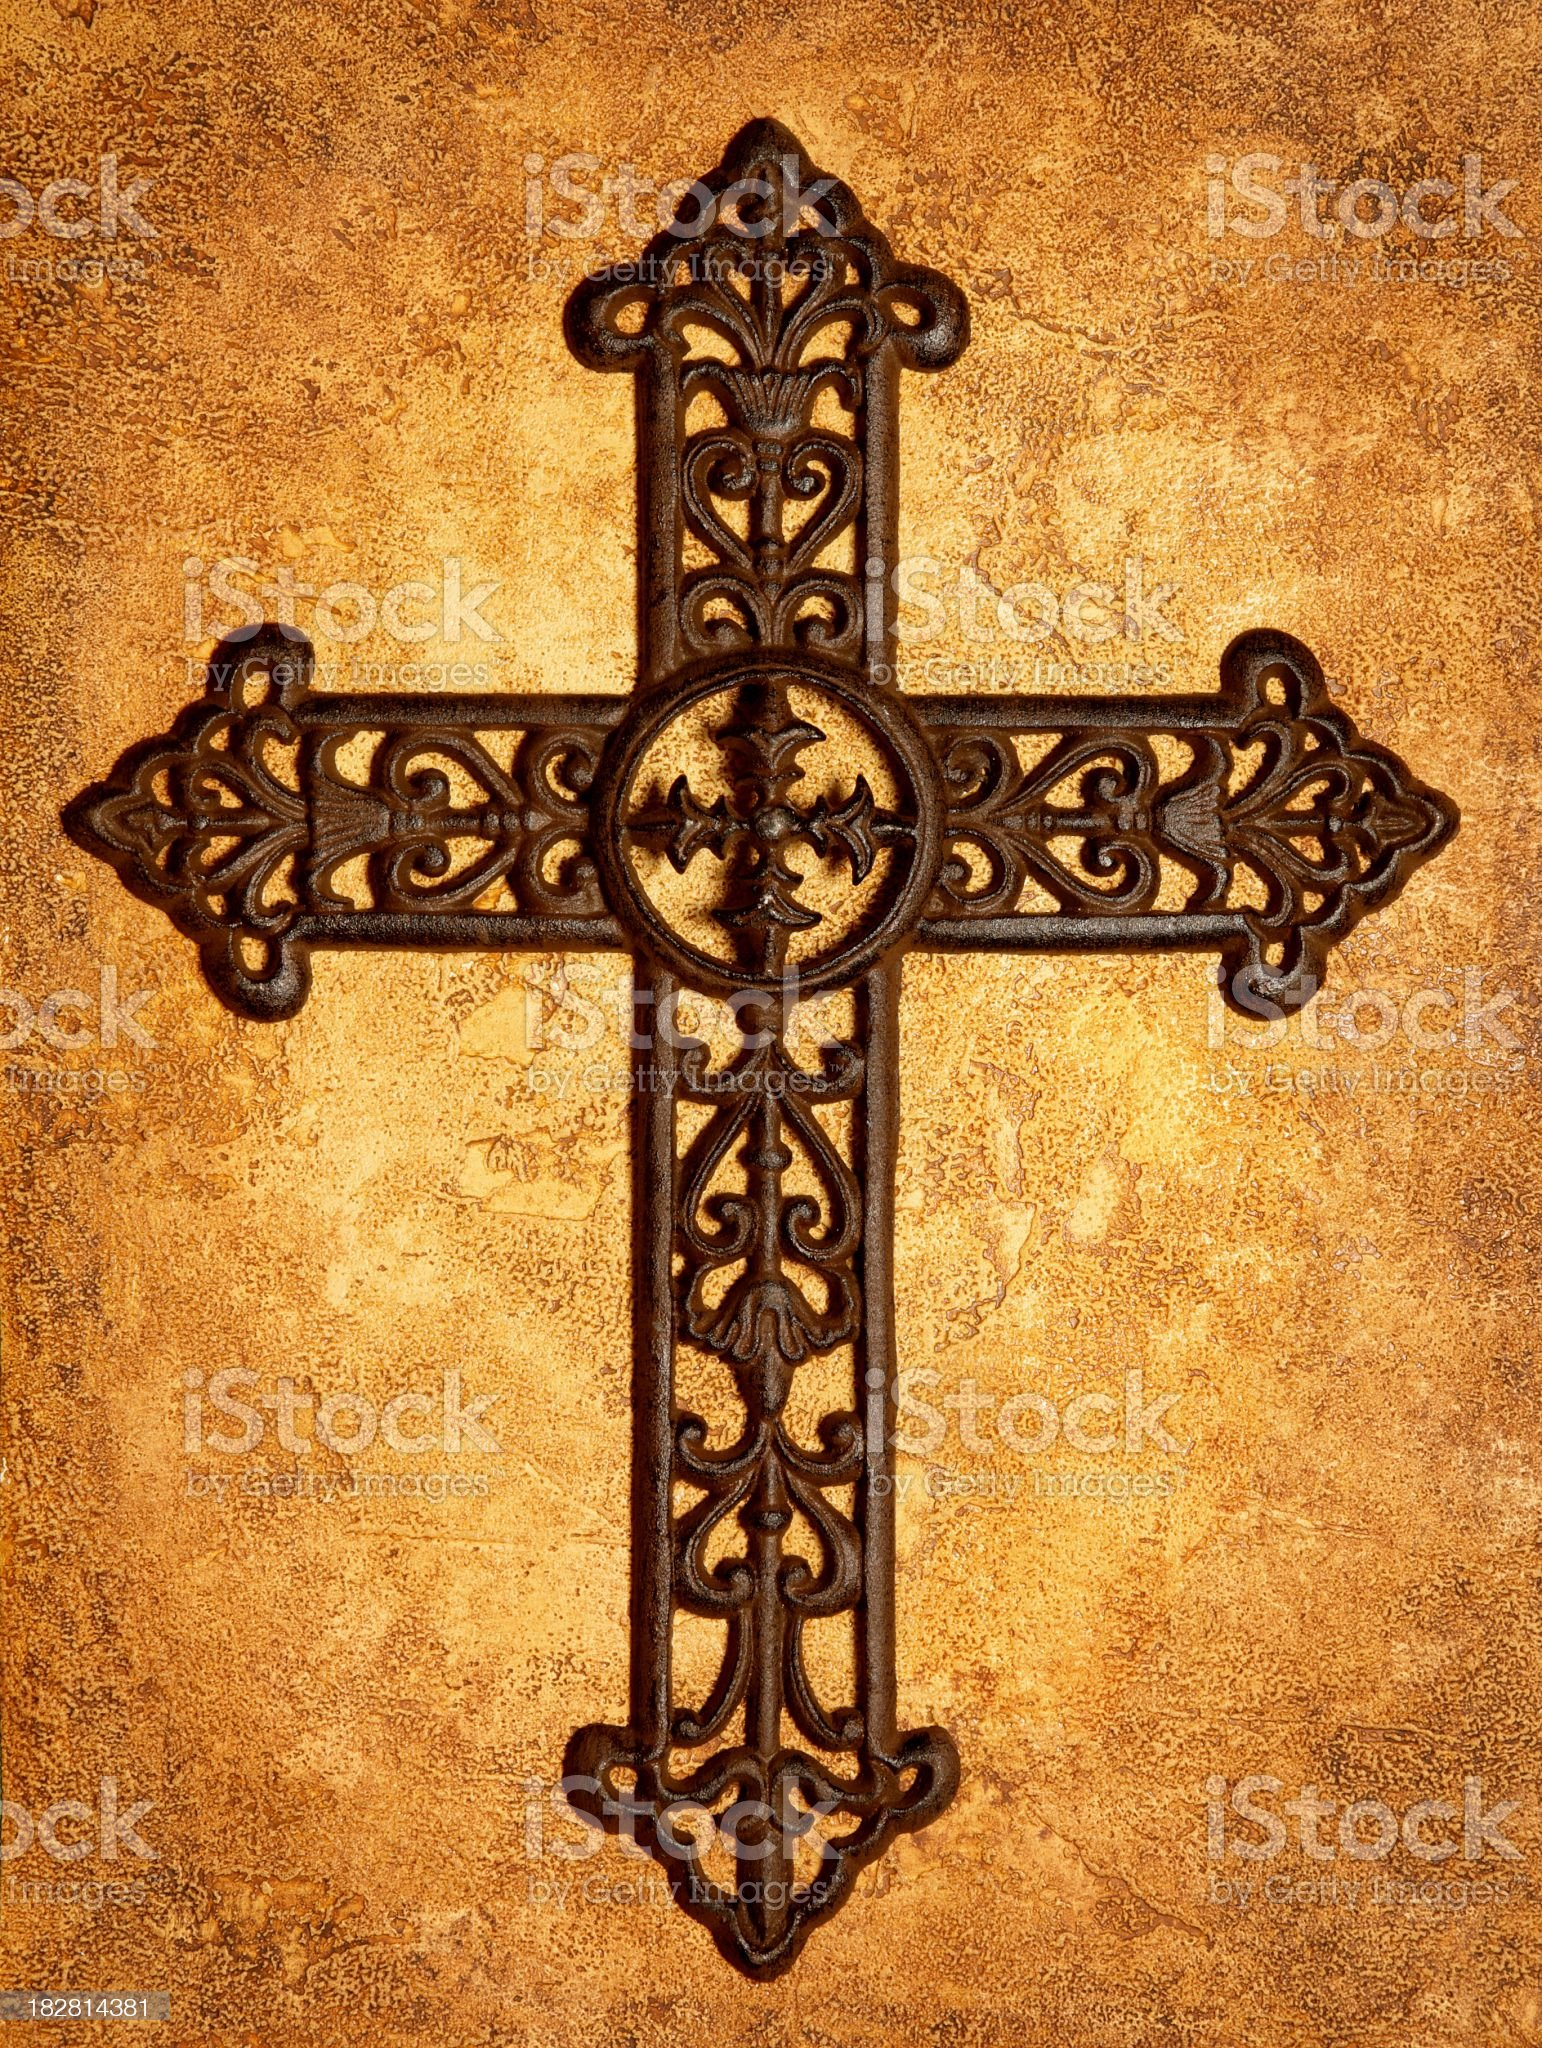 Religious: Iron Cross on Antiqued Textured Background royalty-free stock photo